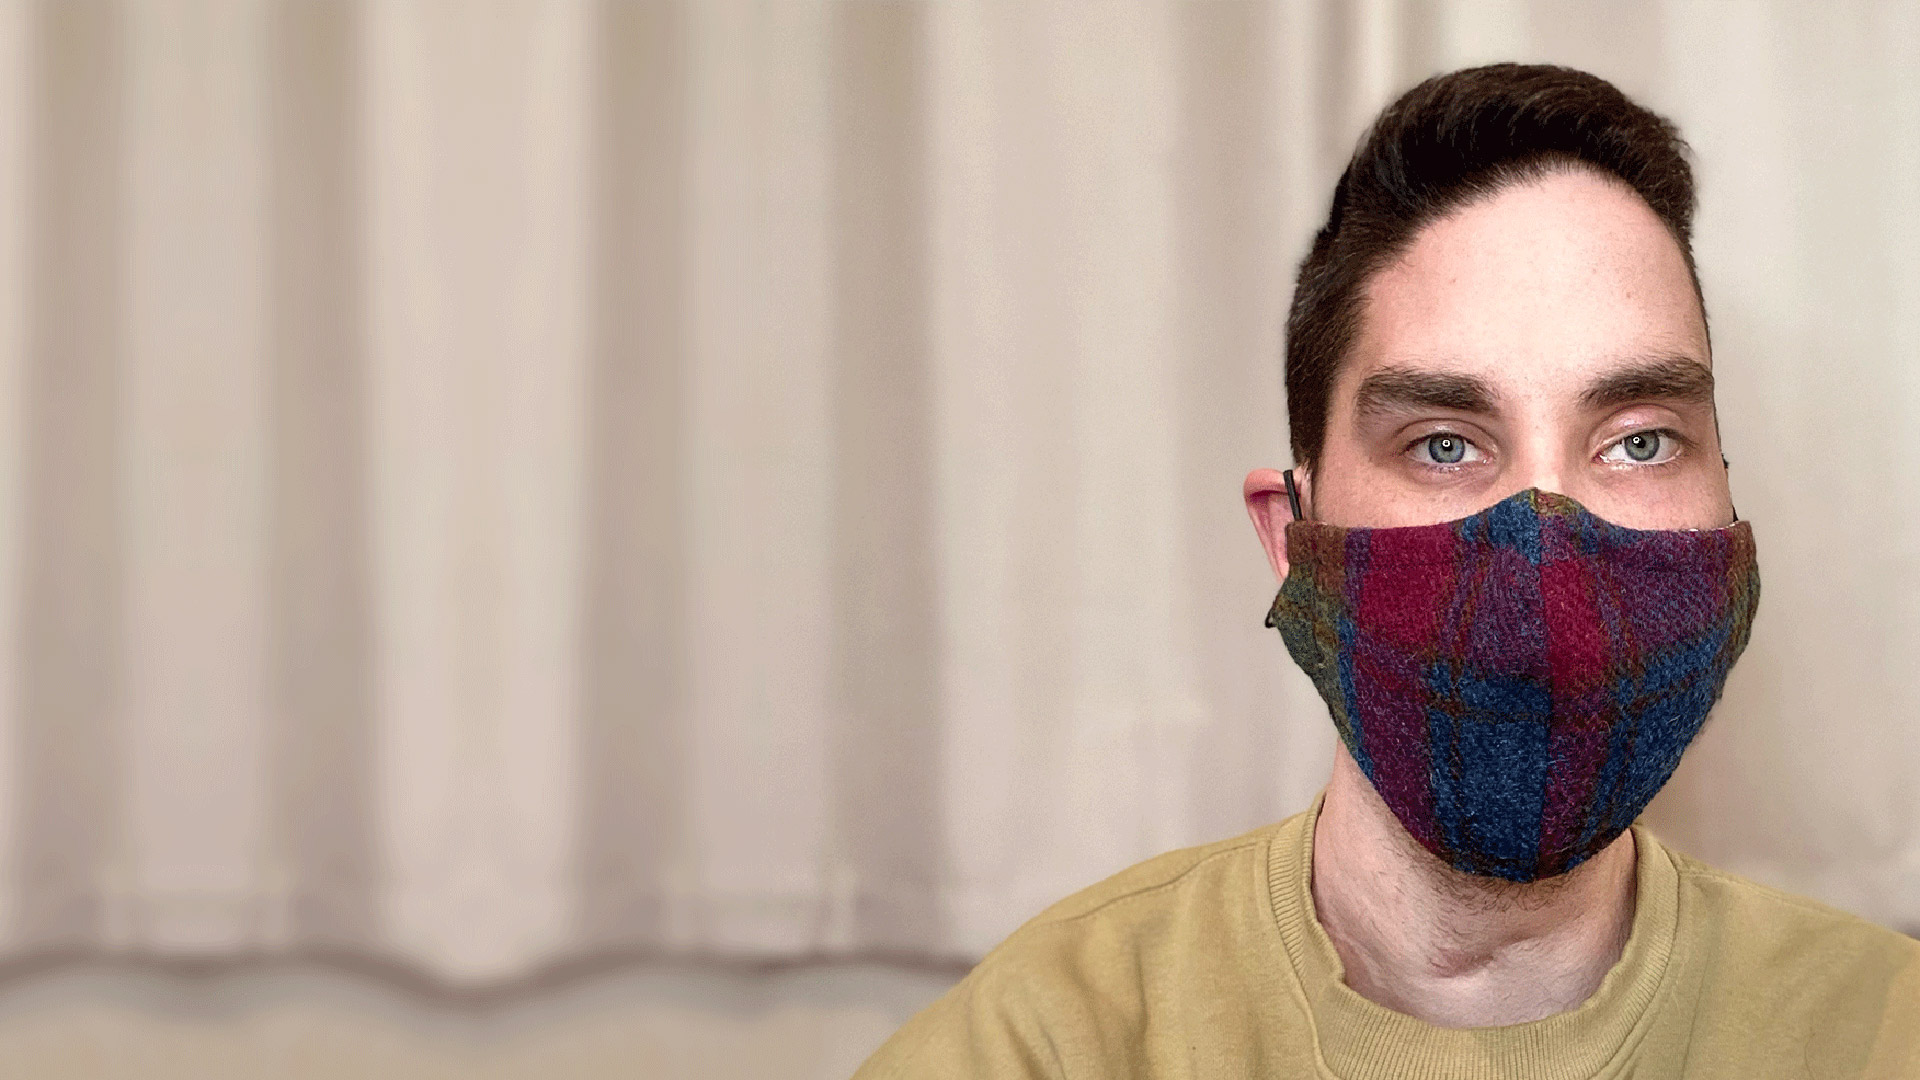 A man wearing a face mask looking directly to camera